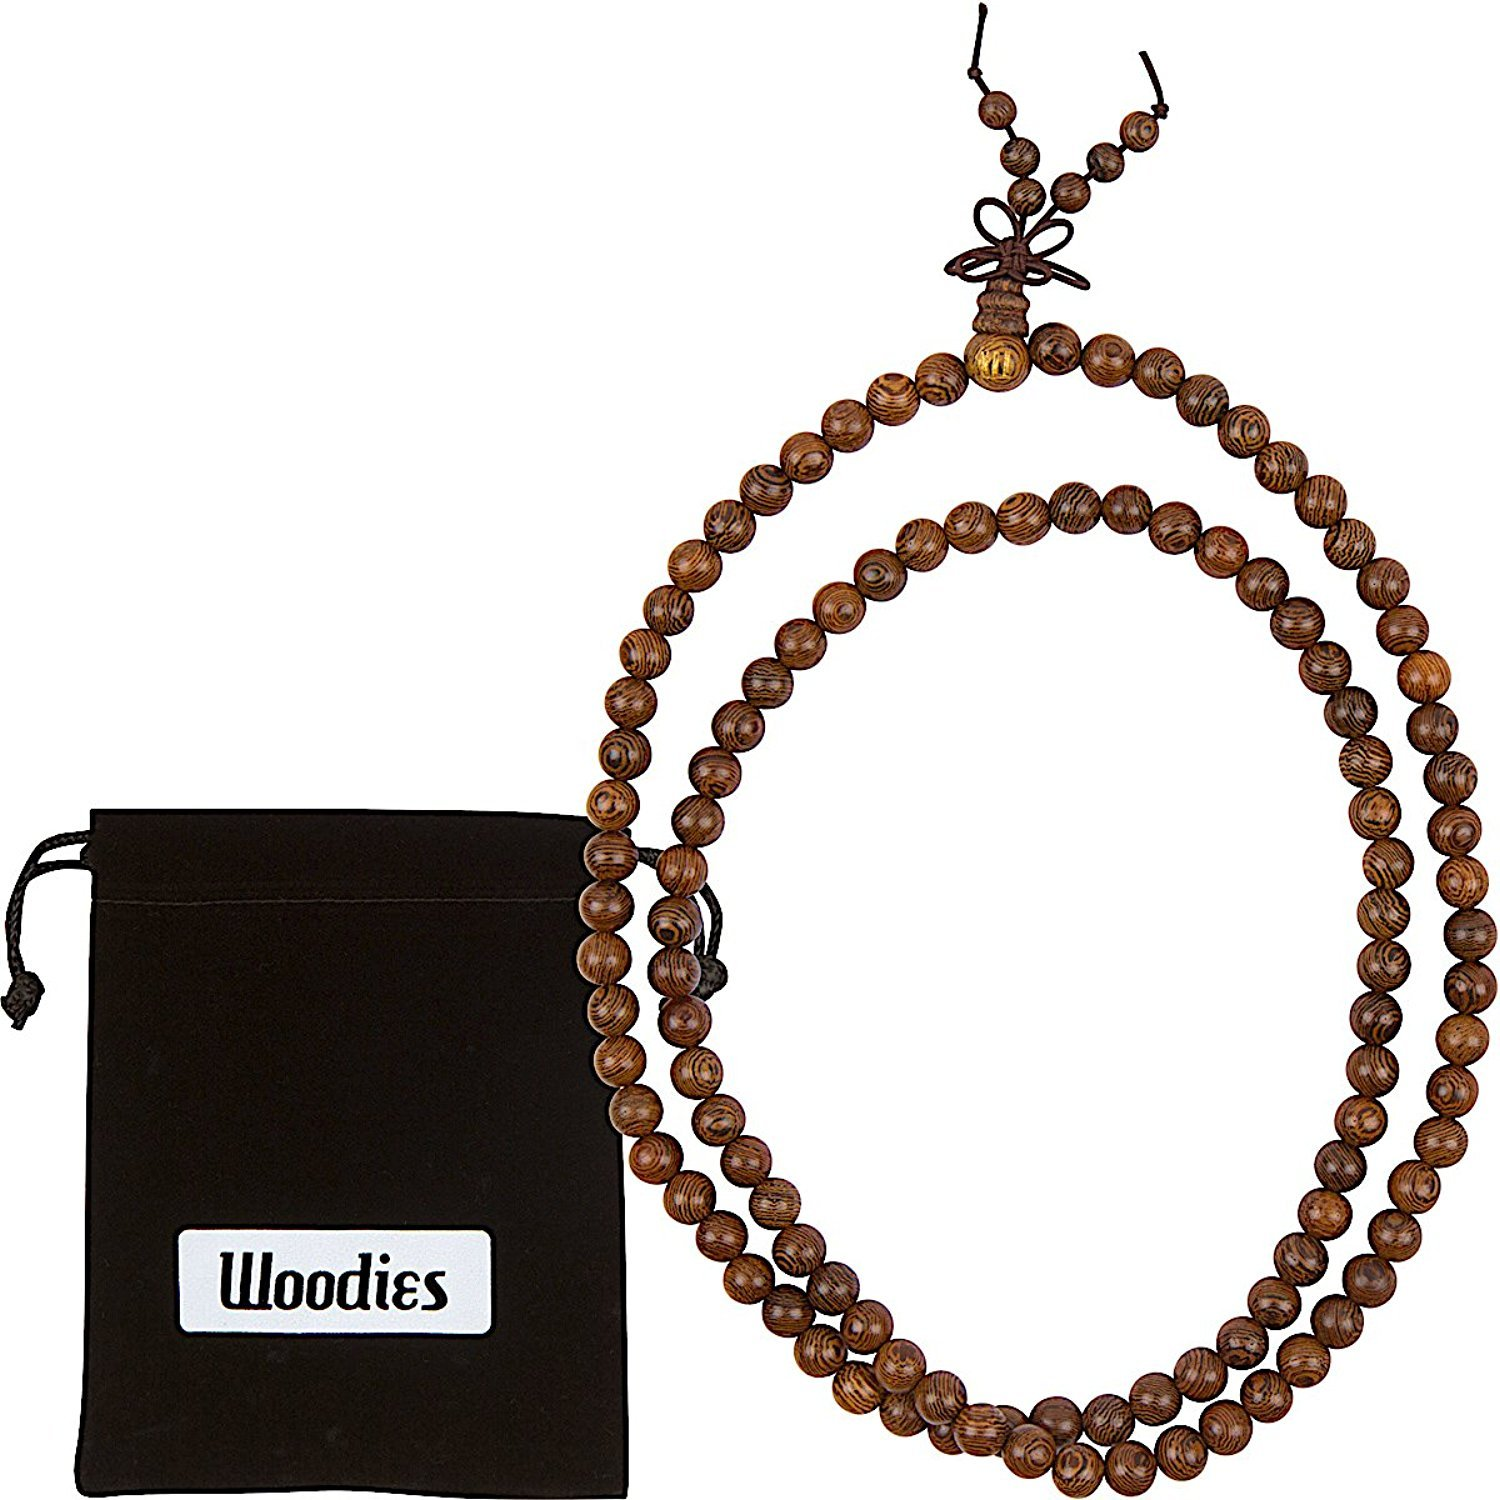 WOODIES Walnut Wood Bead Necklace 00_CQZBZPGG_02